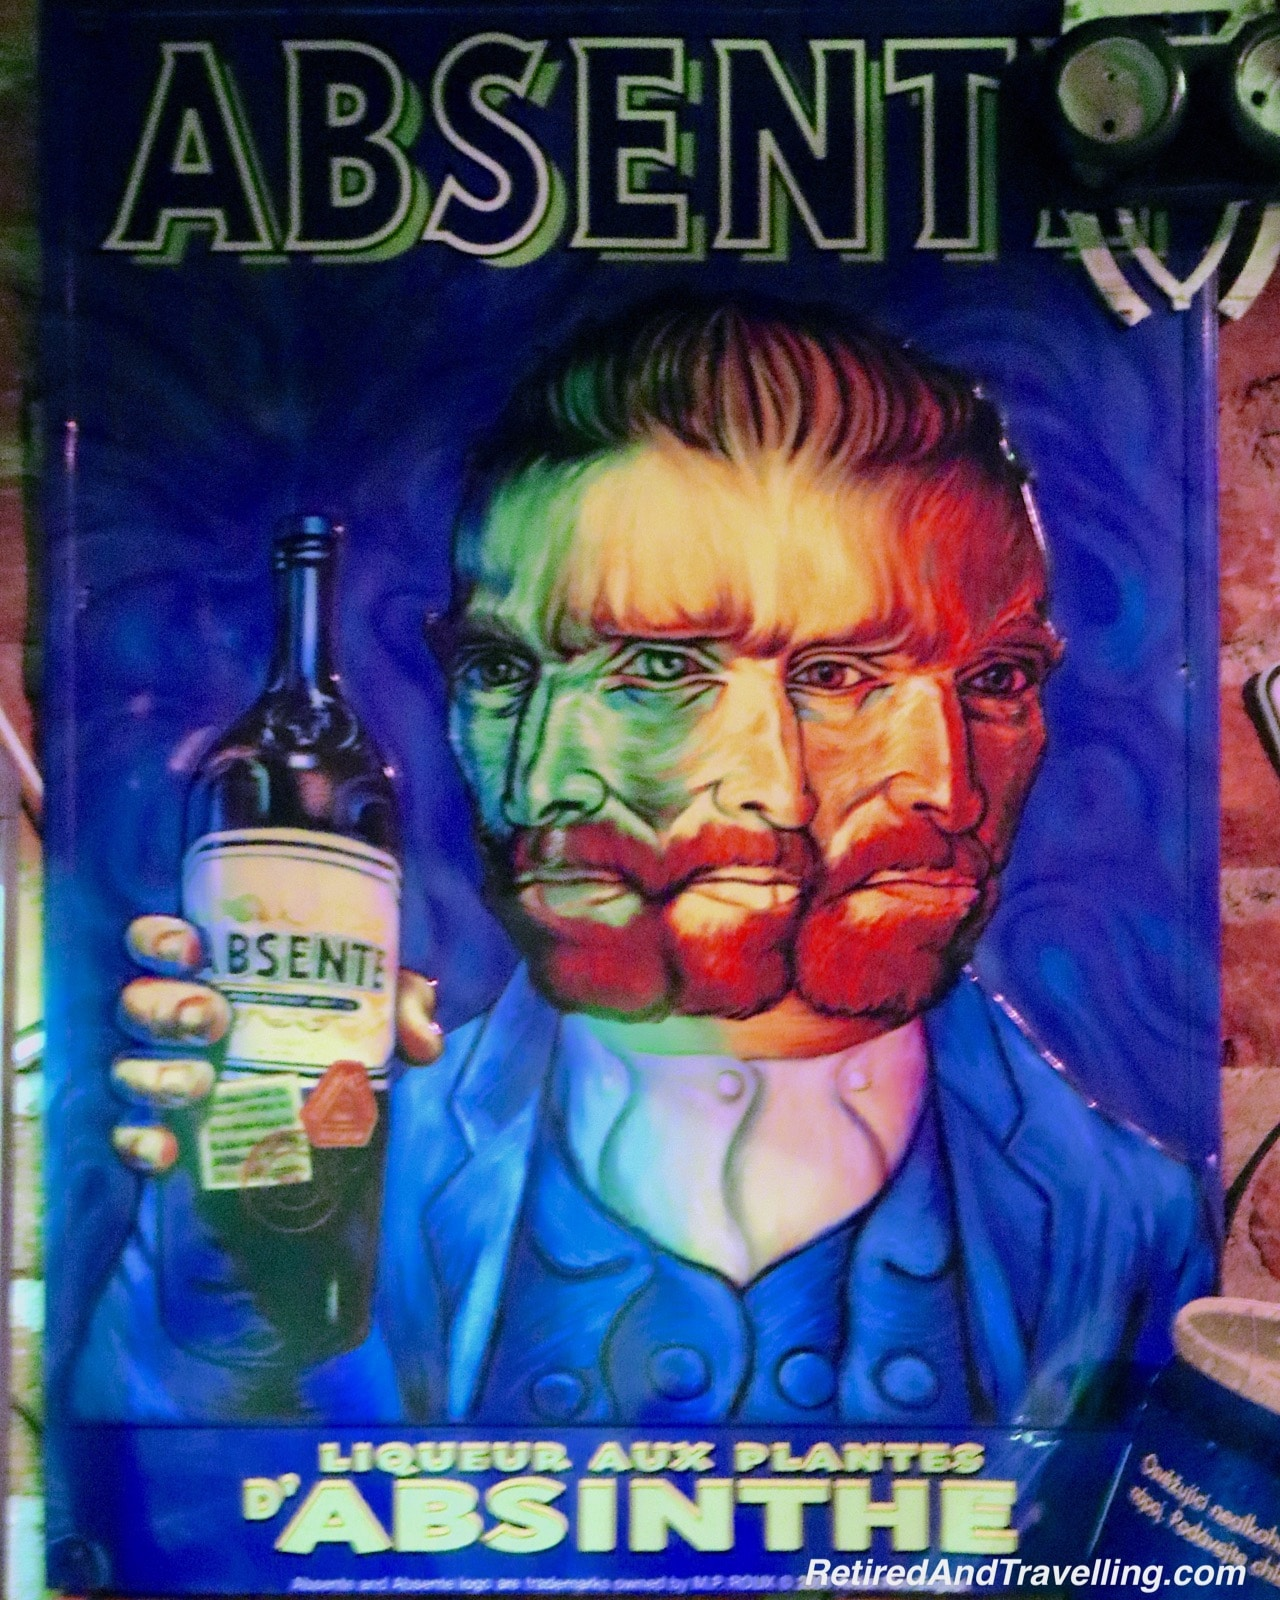 Vincent Van Gogh Absinthe Decoration - Green Devil's Absinth Bar - Visit An Absinthe Bar In Prague.jpg